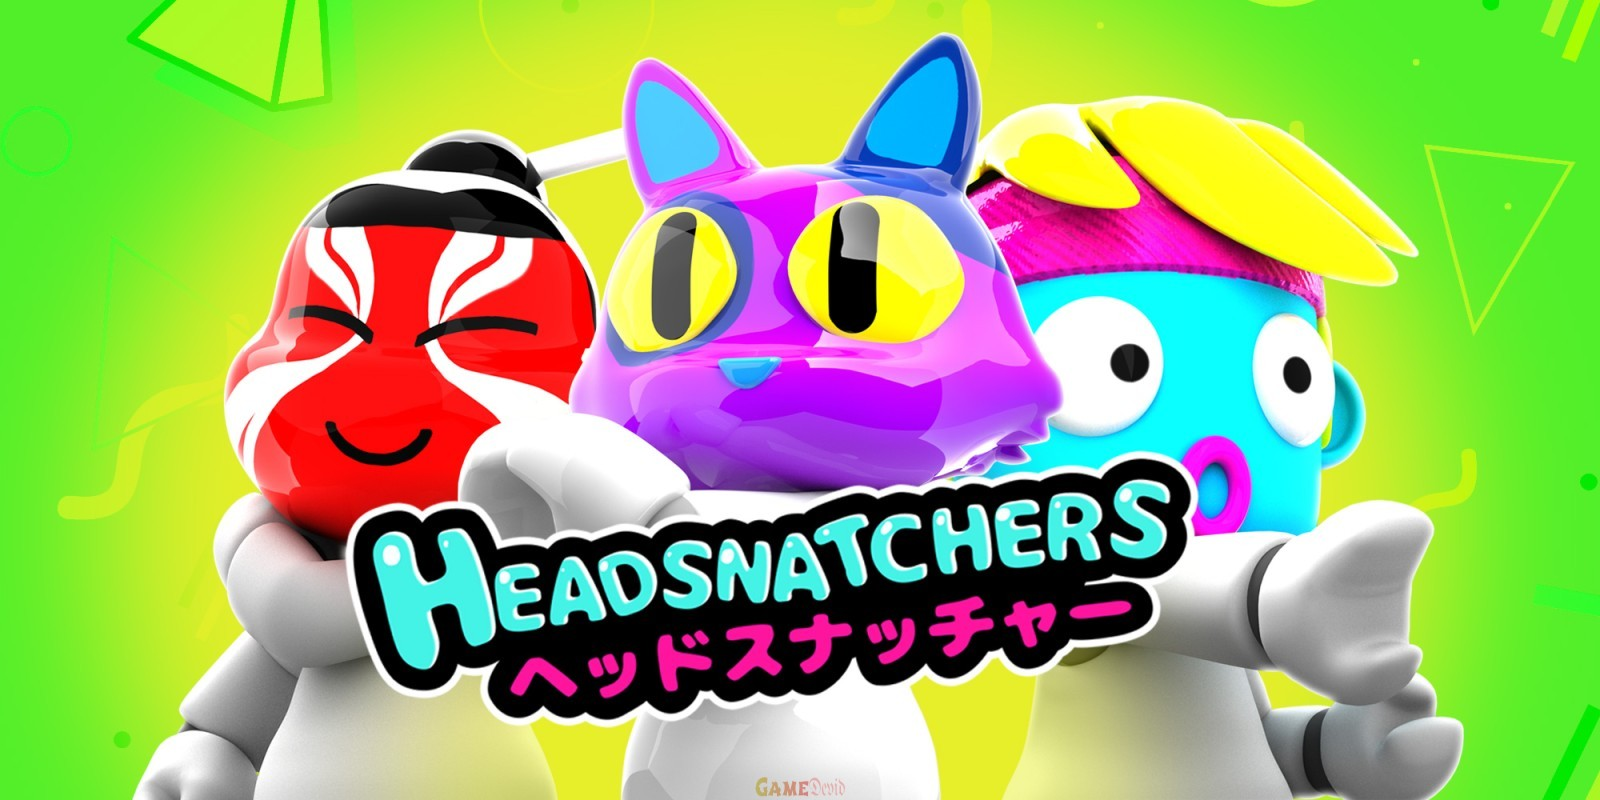 Headsnatchers XBOX One Game Version Download Now